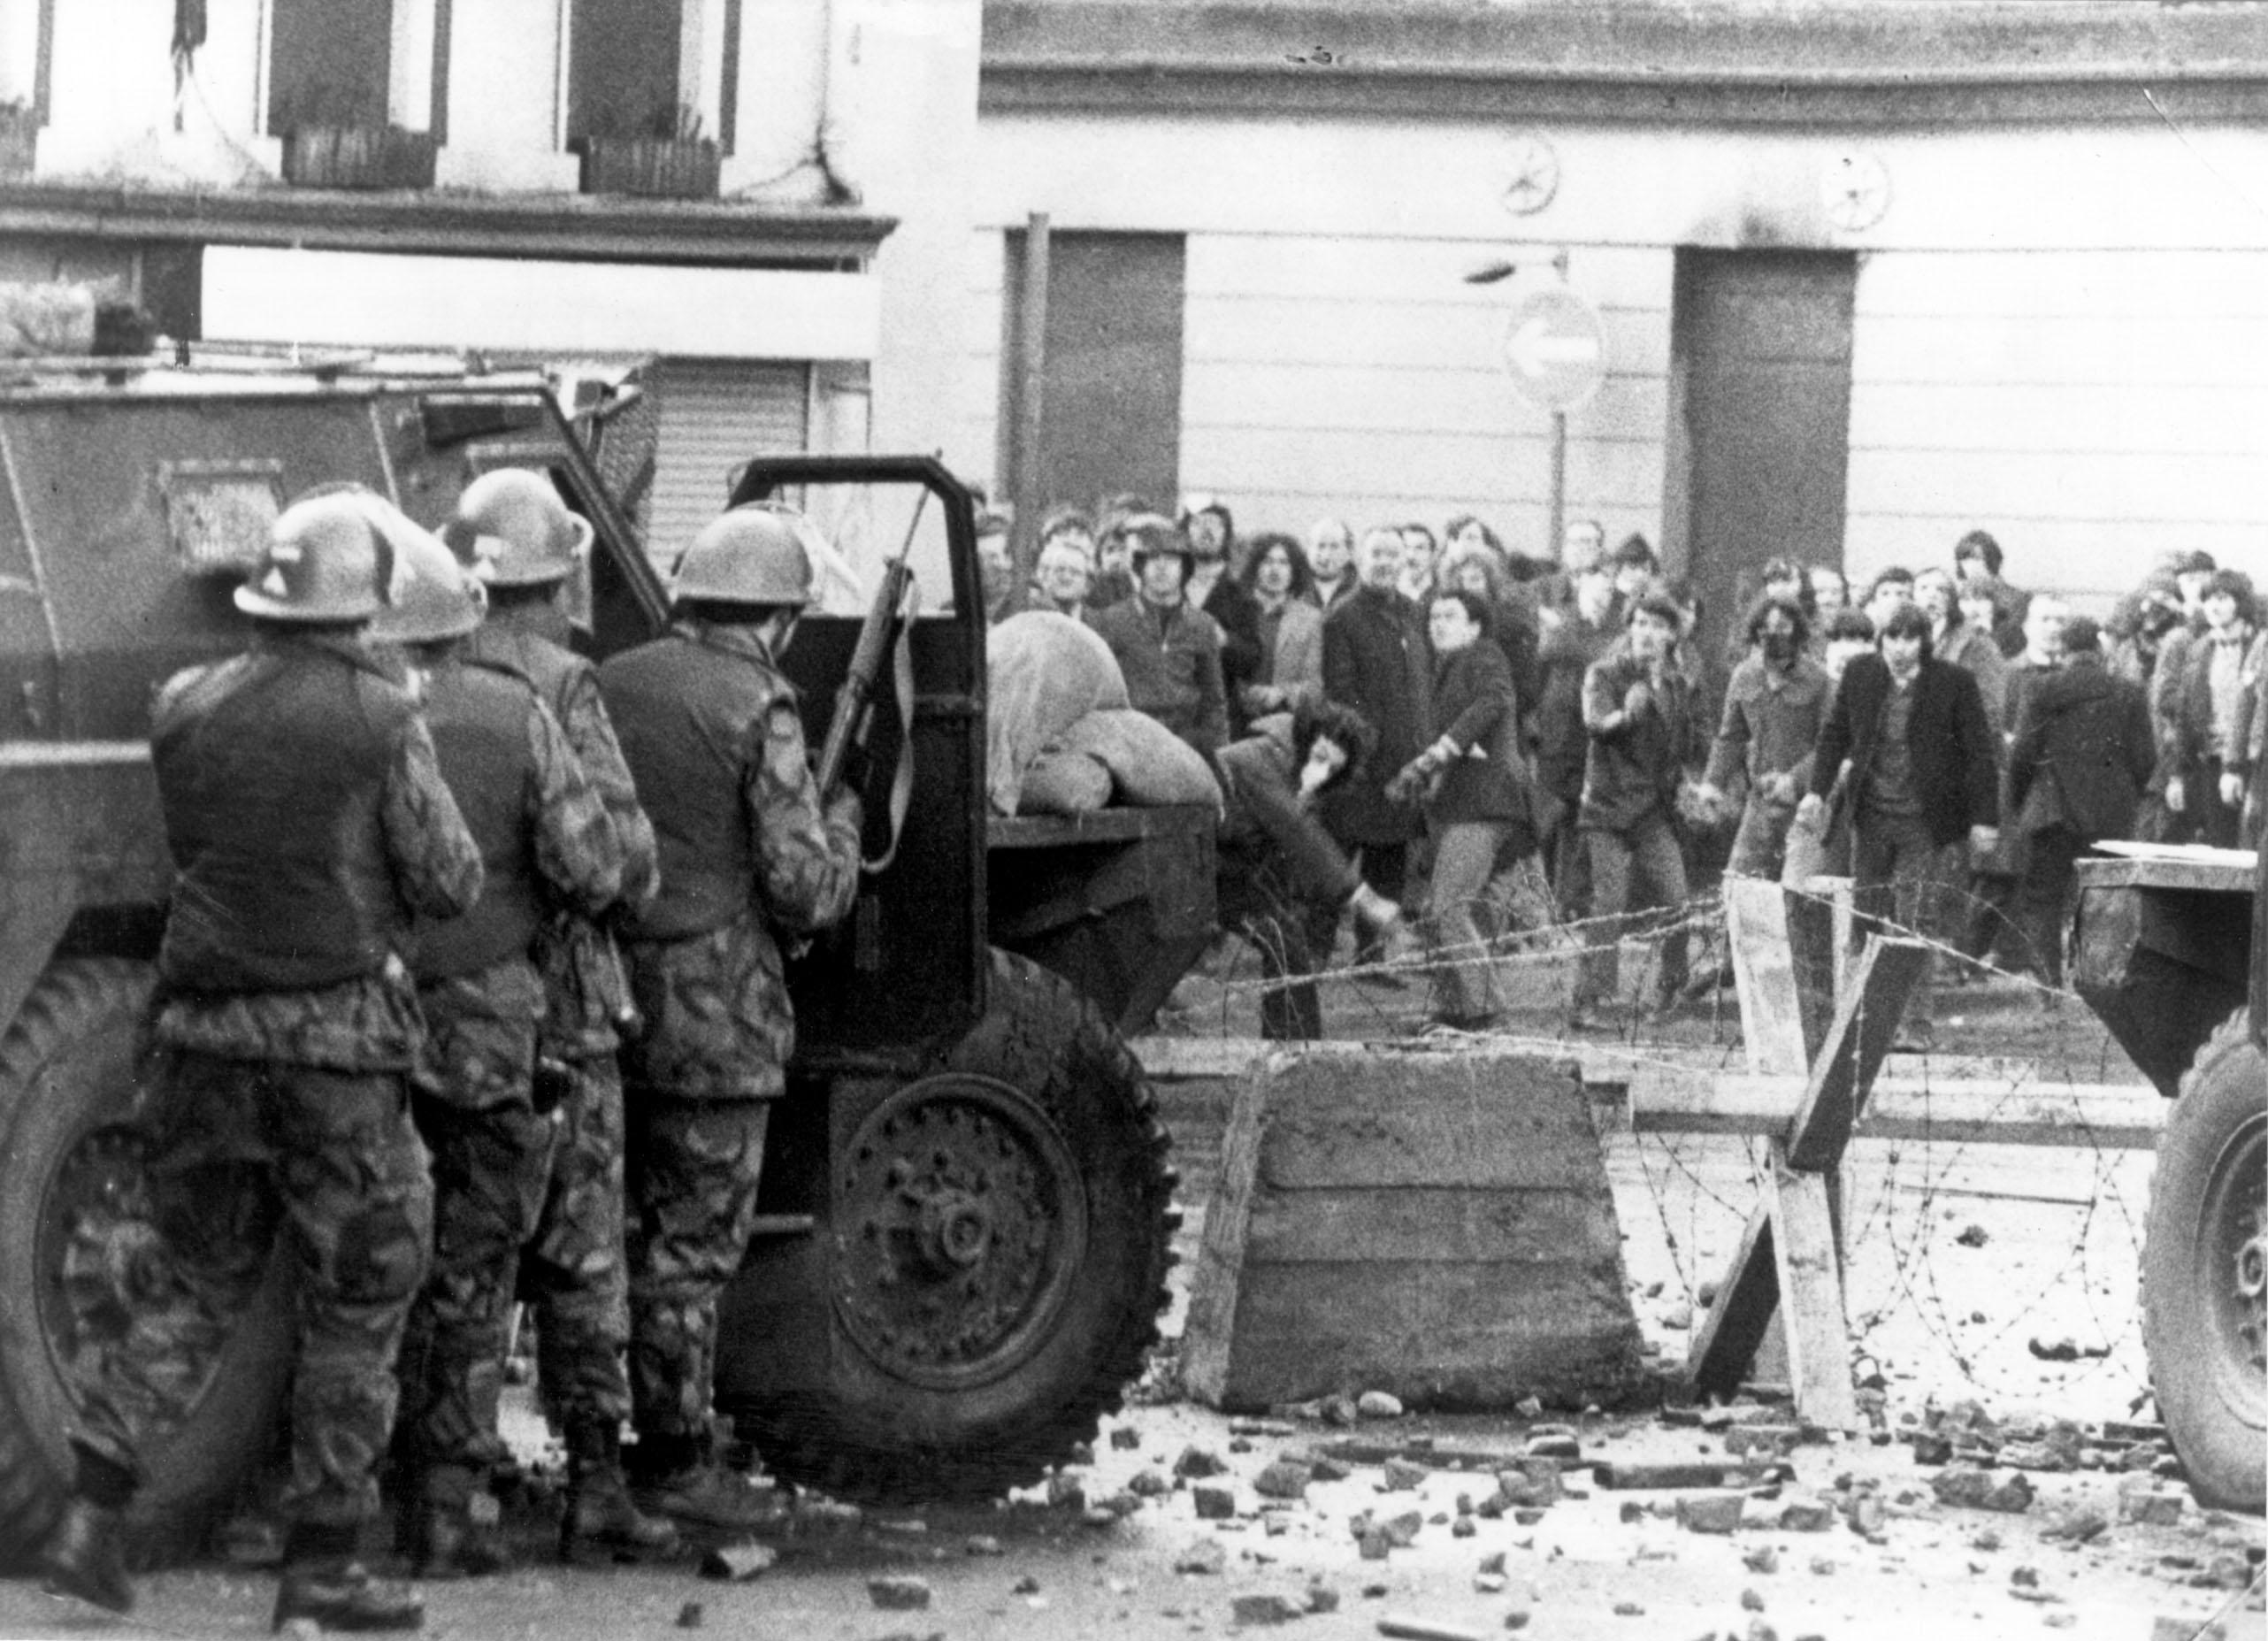 In the streets during Bloody Sunday, when paratroopers opened fire on rioting Catholics in Londonderry, killing 13 people